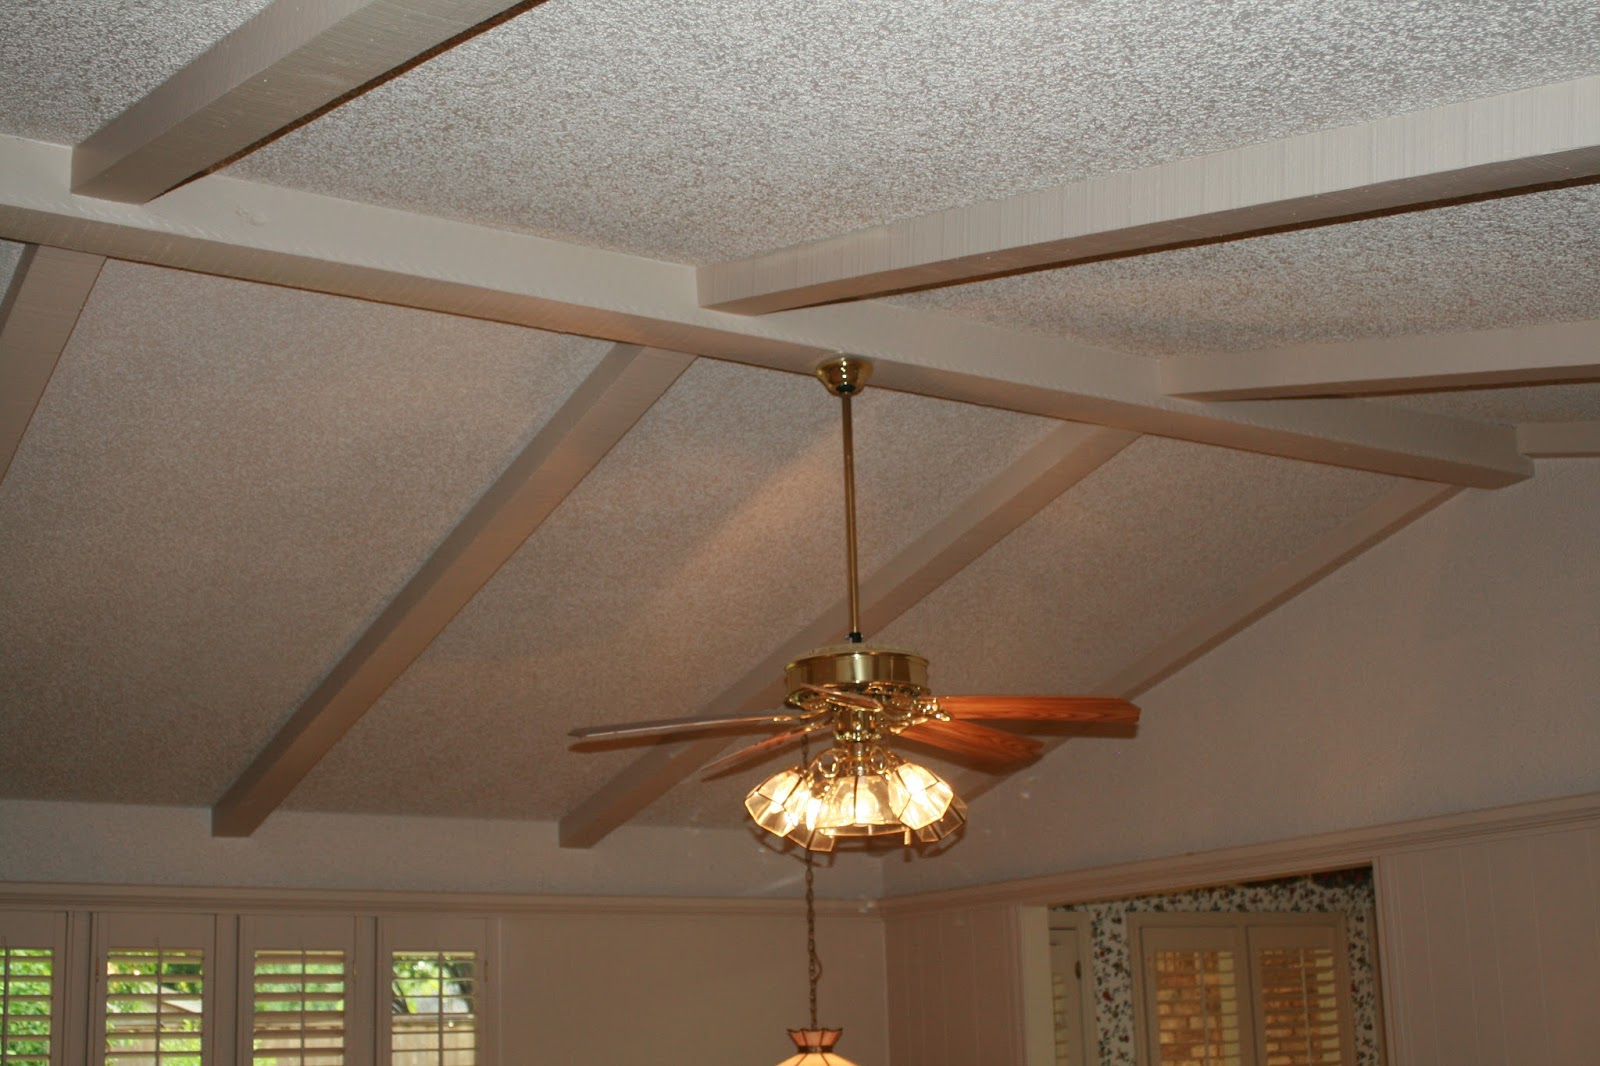 Romance renovations painting ceiling beams to look like wood for How to add beams to a ceiling